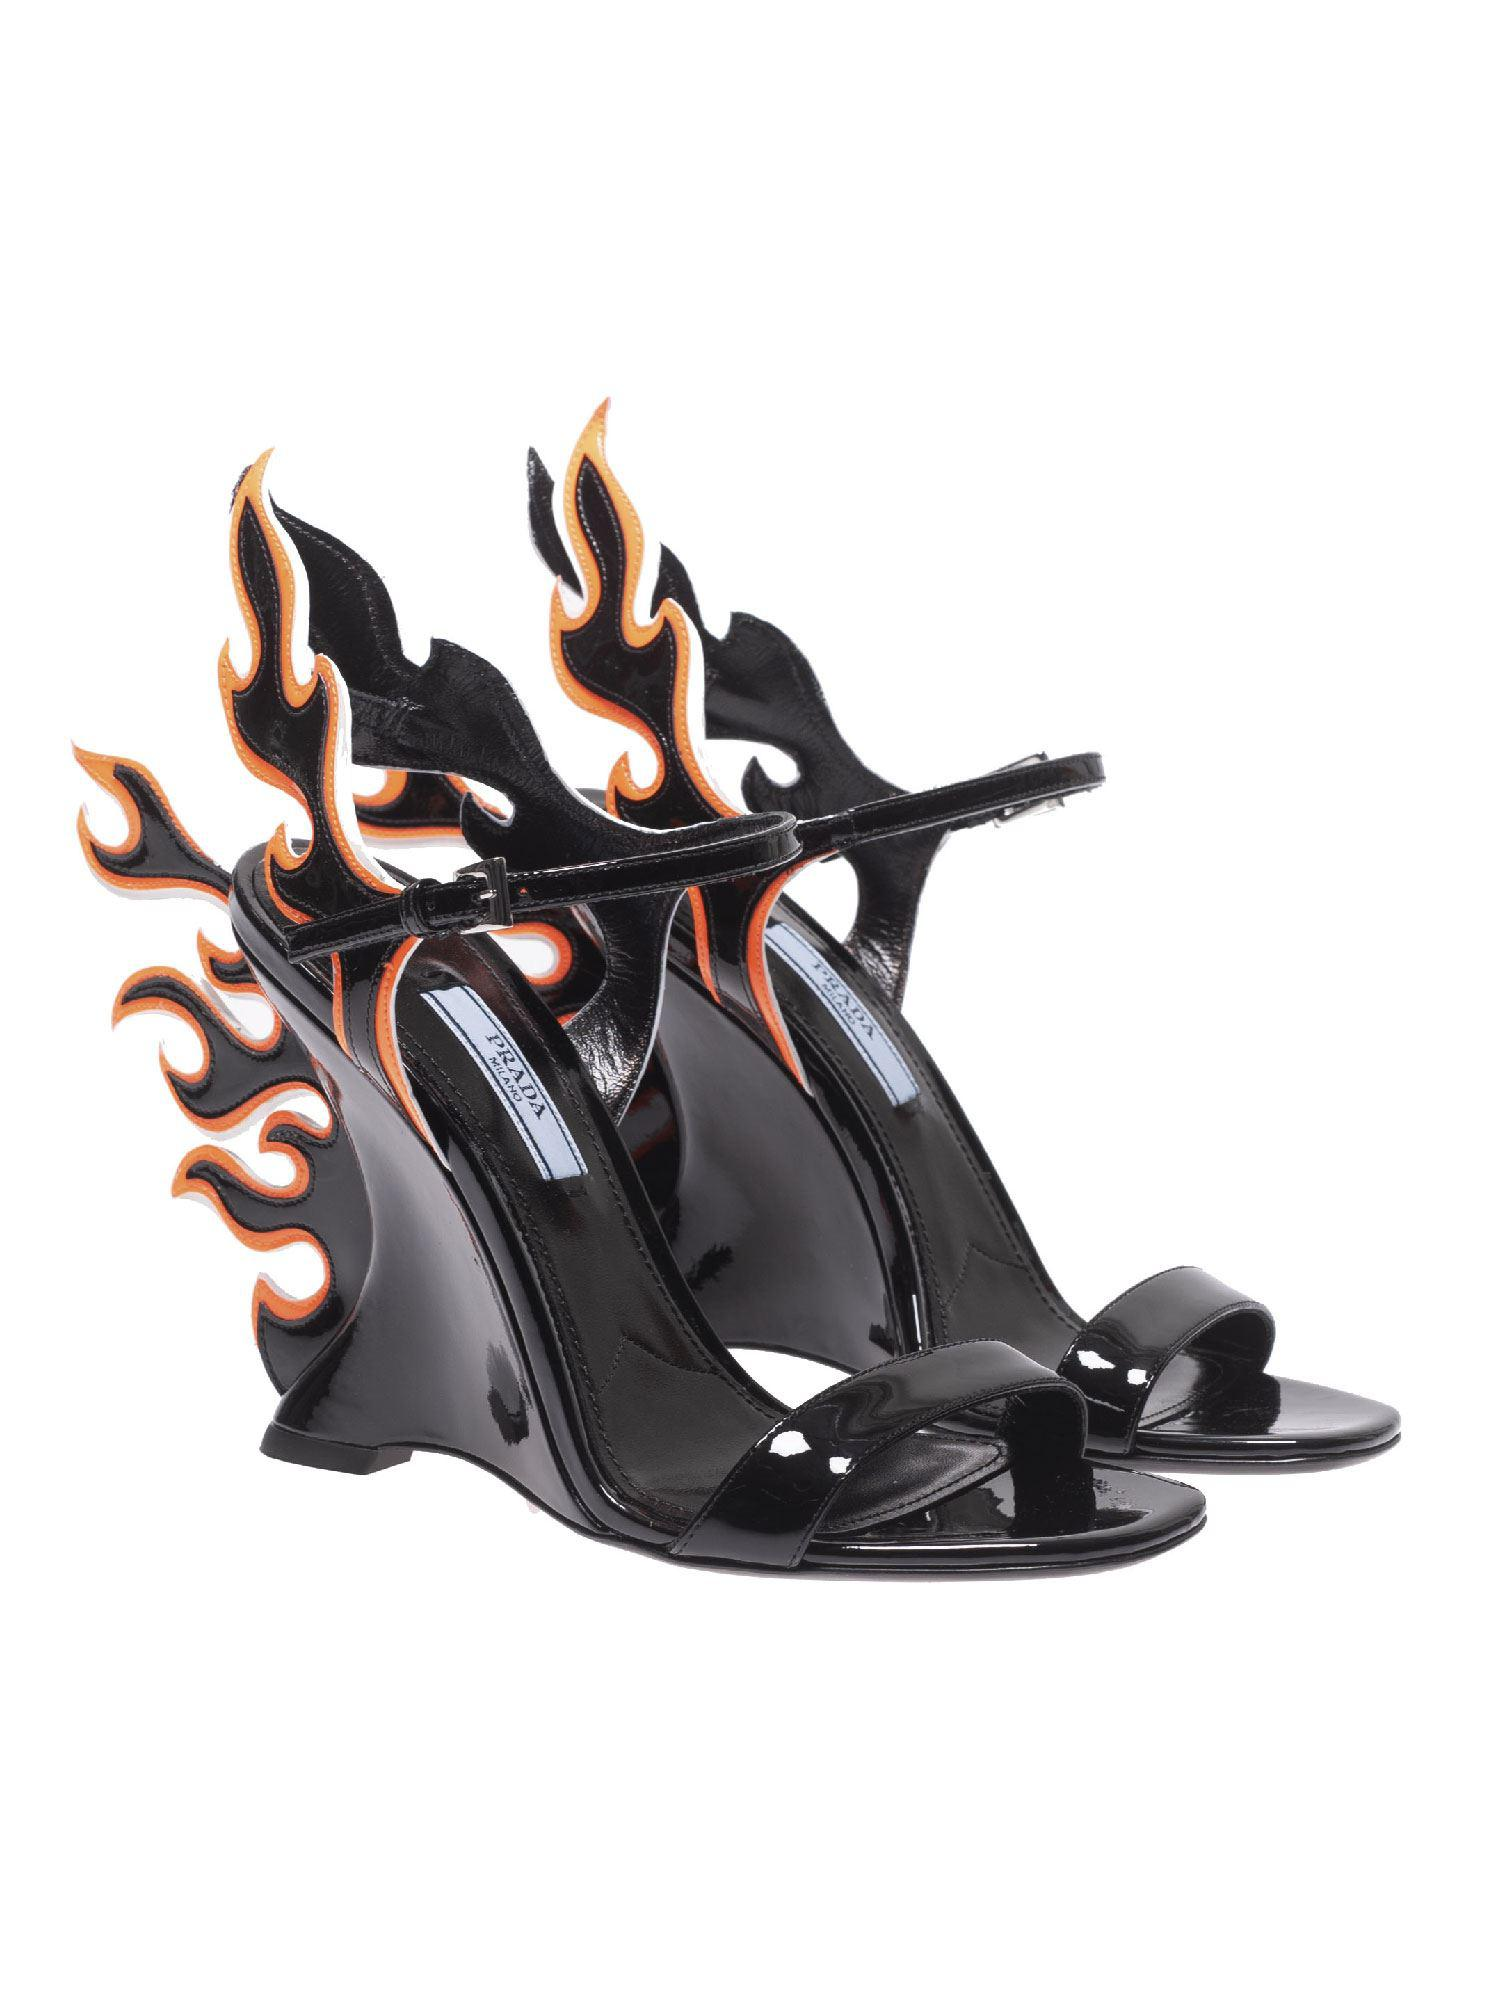 1f817c00aed0 Prada Patent Leather Sandals With Flames - Save 8% - Lyst